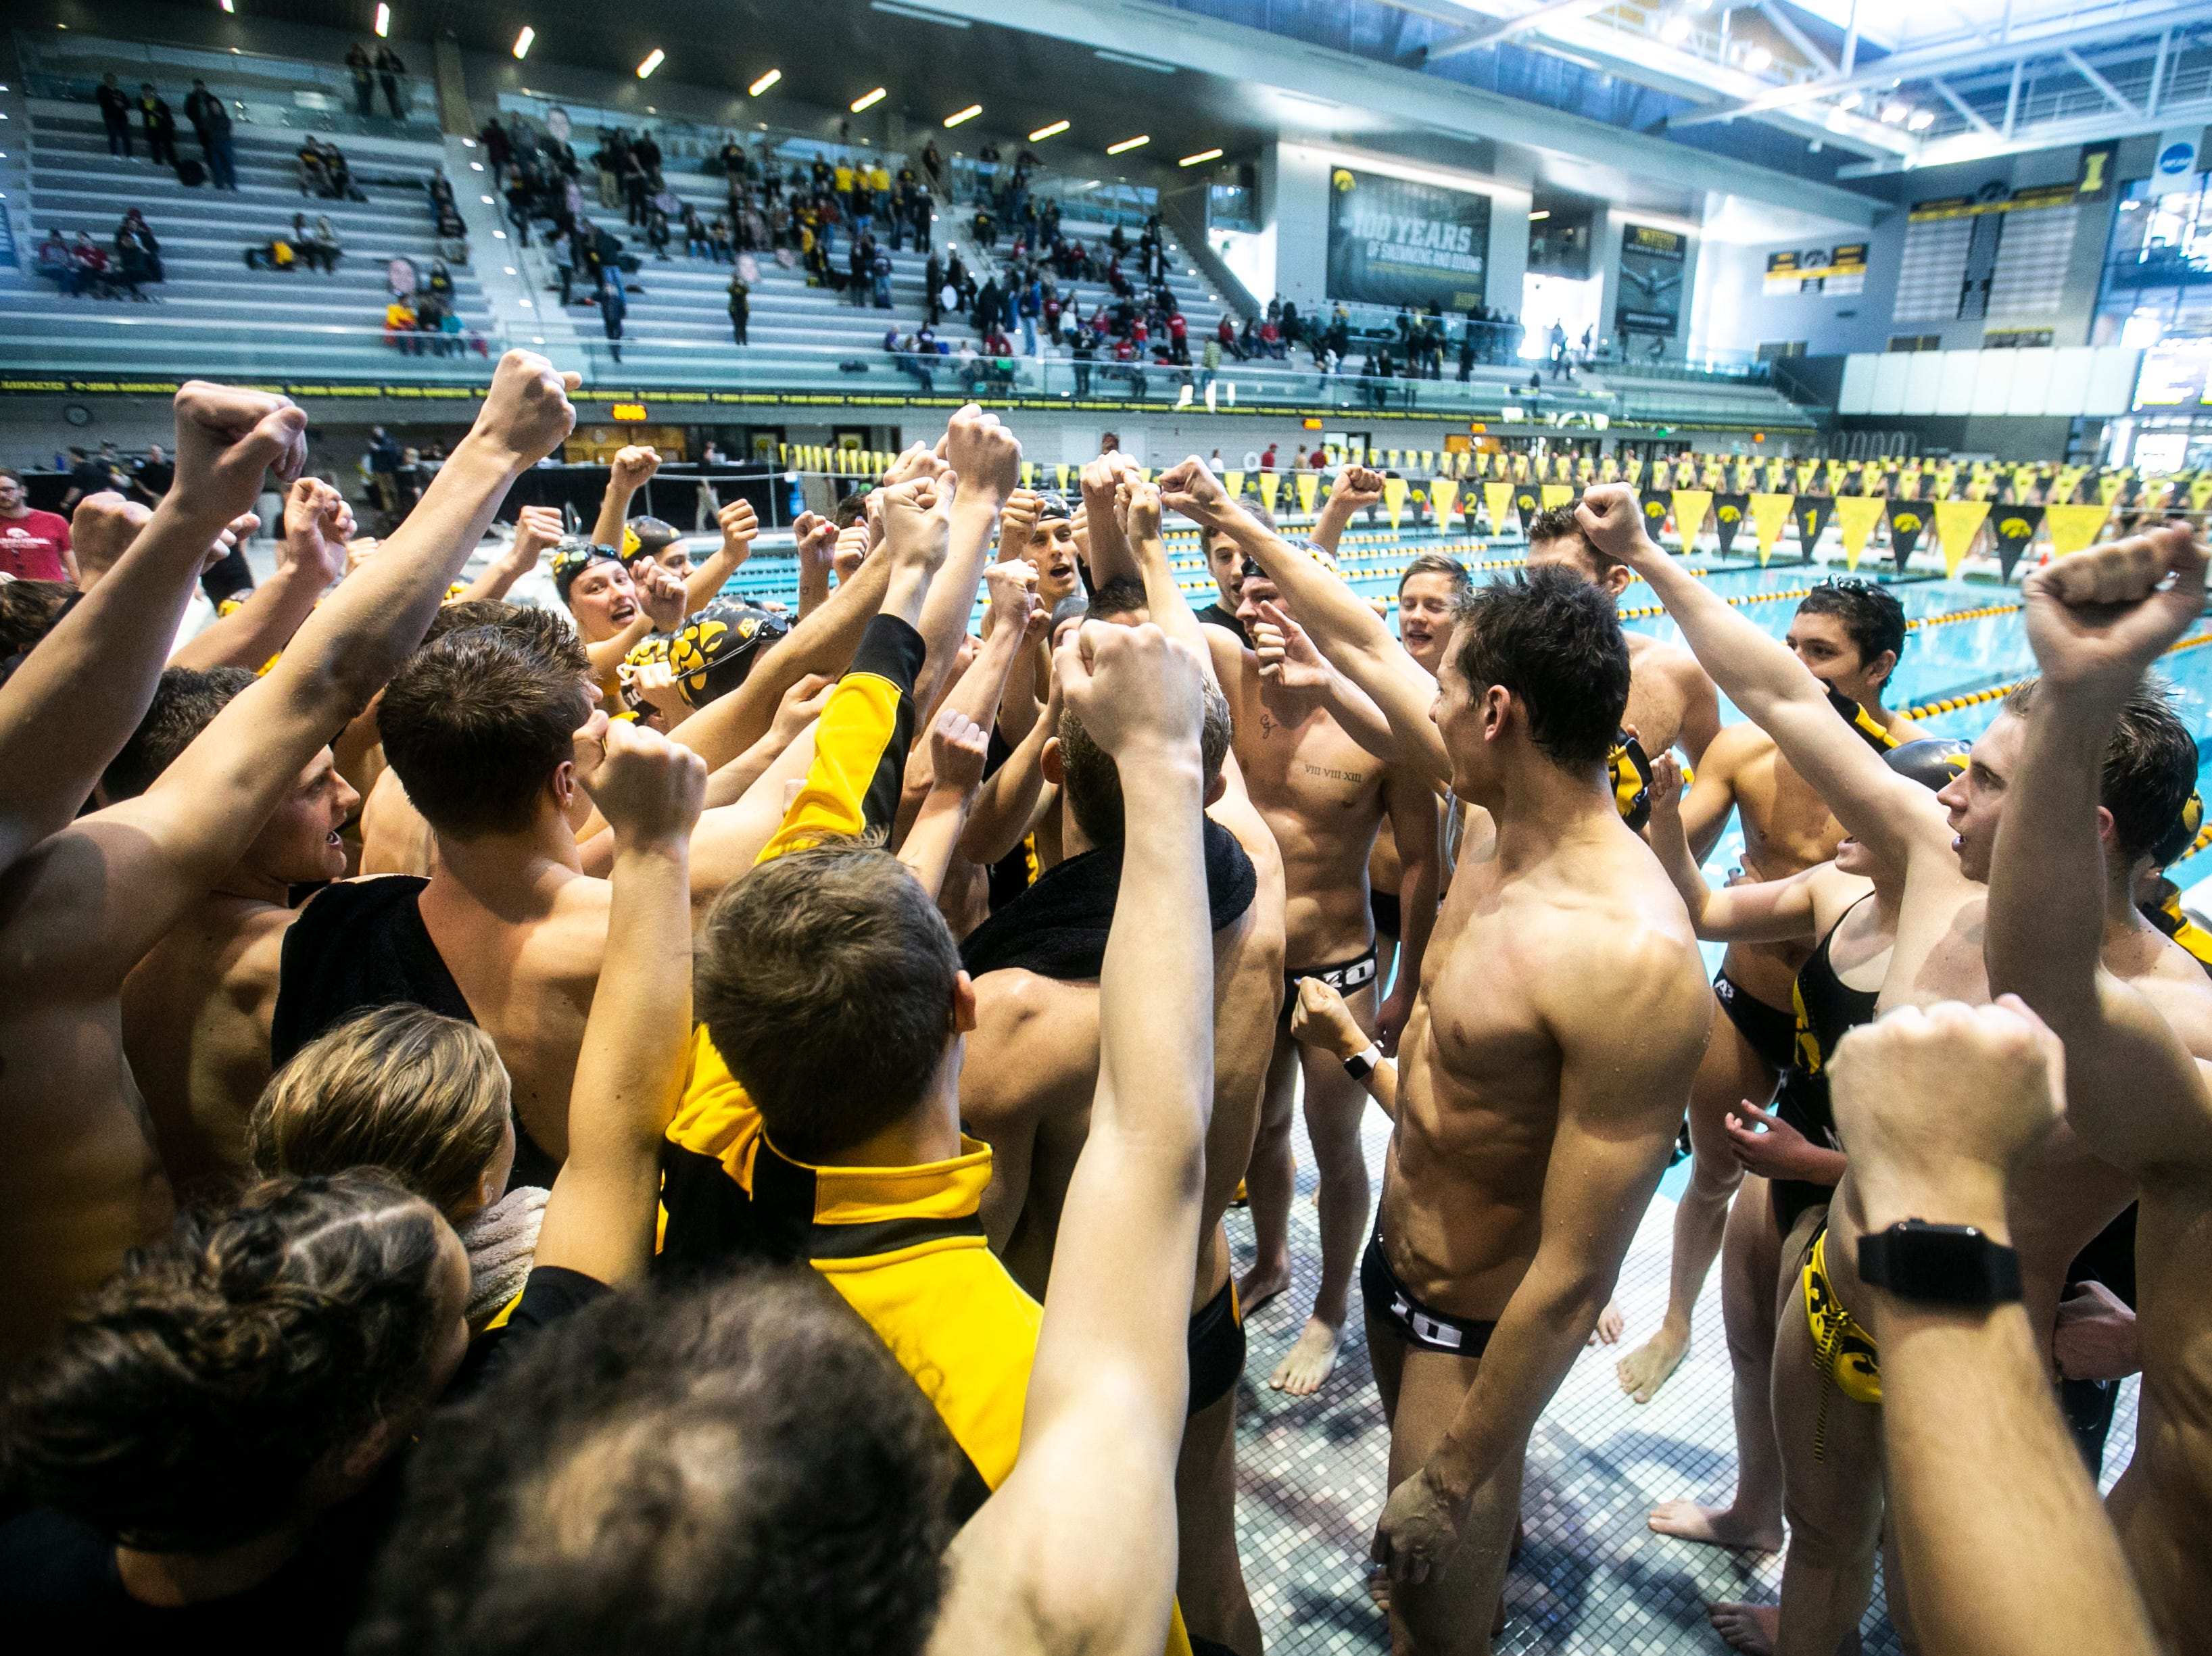 Iowa Hawkeyes huddle up after a NCAA Big Ten Conference swimming meet on Saturday, Jan. 19, 2019, at the Campus Recreation and Wellness Center in Iowa City, Iowa.